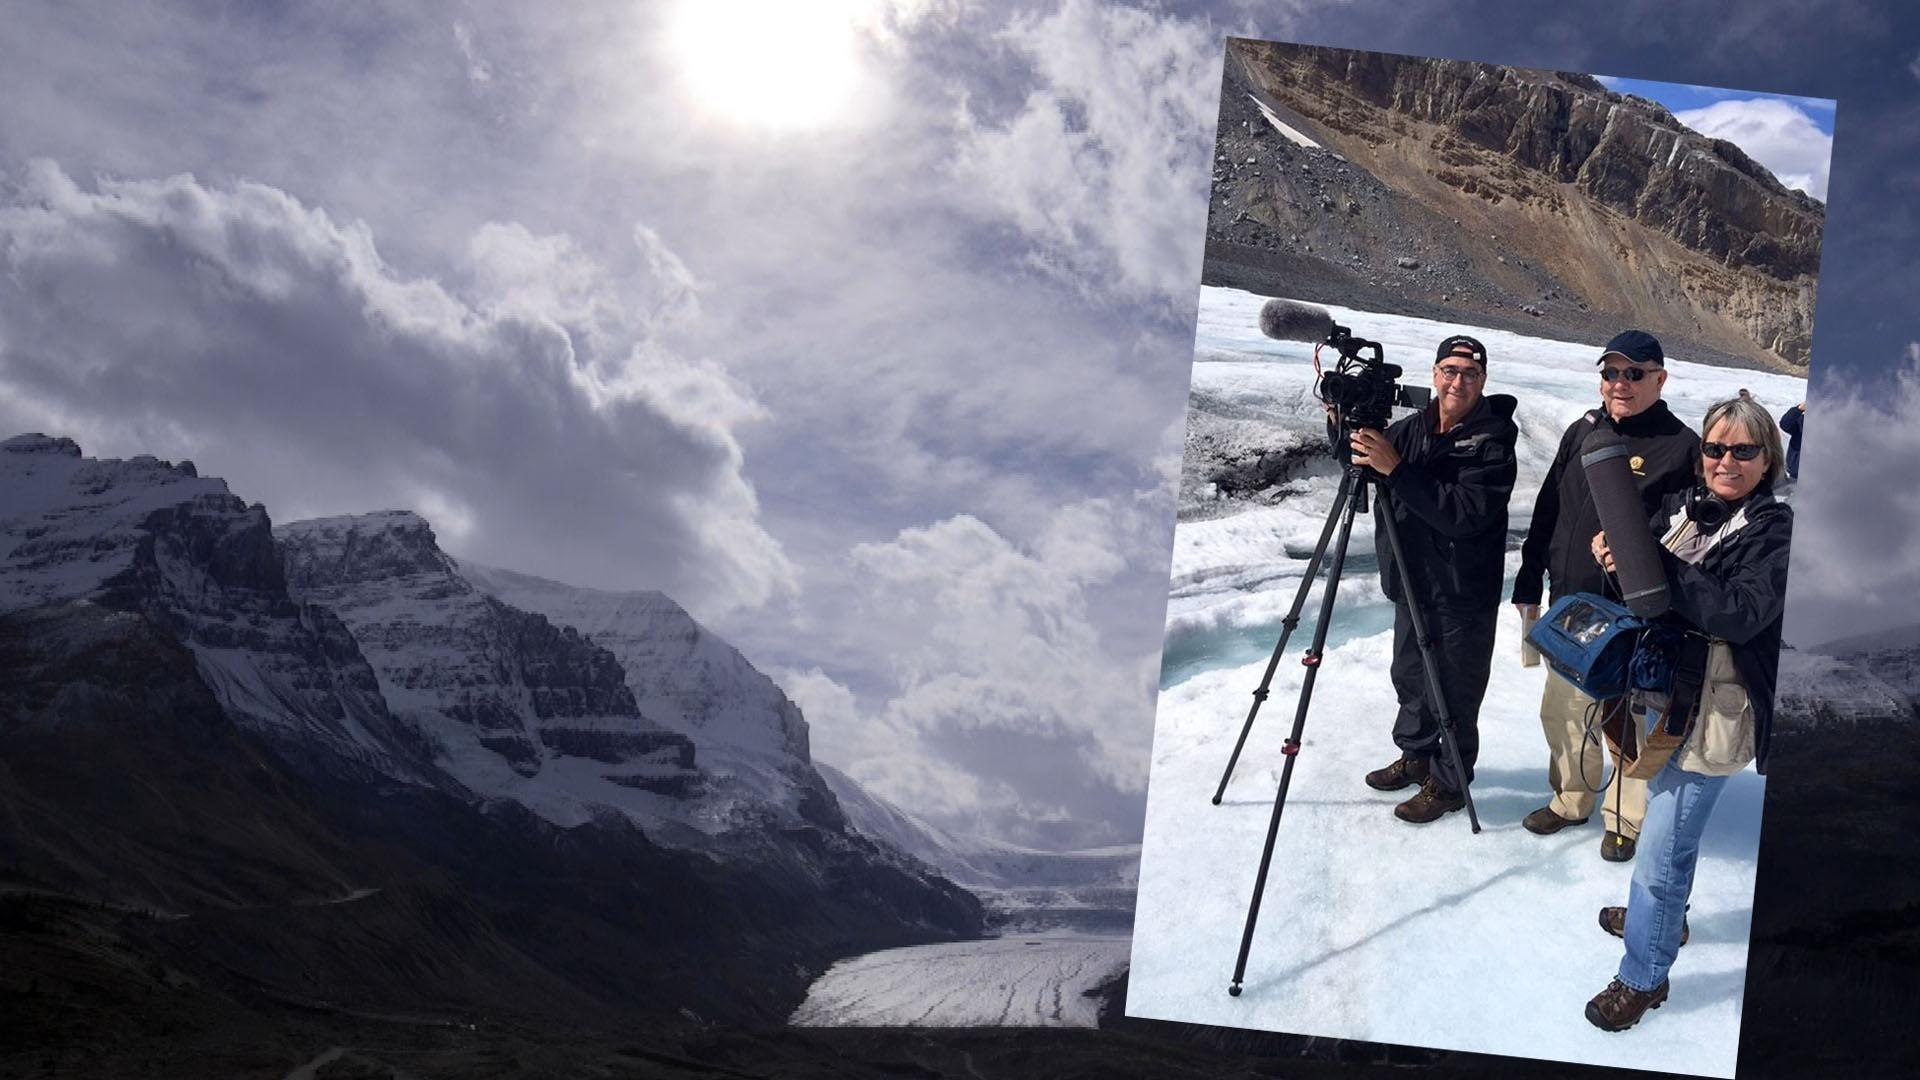 Videographer Jim Zinkowski, Producer John Grant and Sound Recordist Tami Coleman on location at the Athabasca Glacier for Canadian Rockies by Rail.